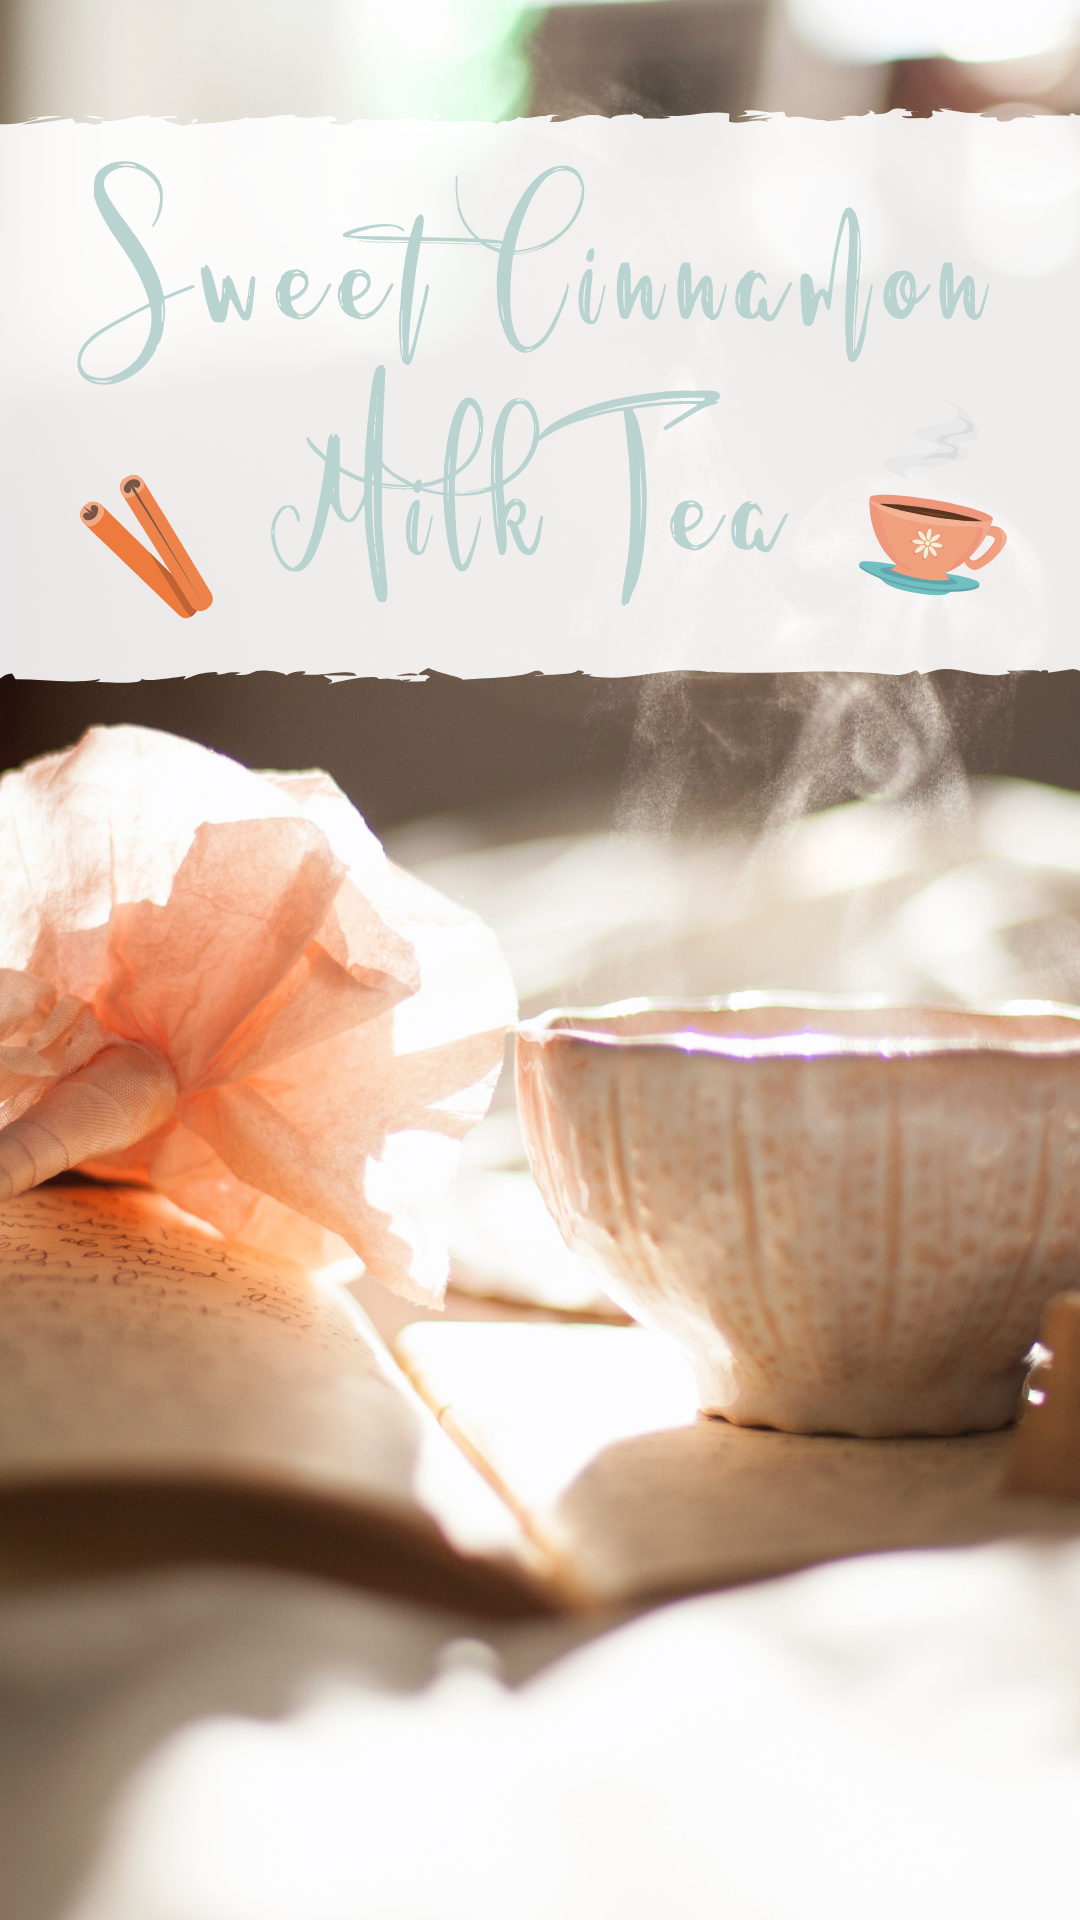 Sweet Cinnamon Milk Tea would also be the perfect addition to a self care or moon ritual!